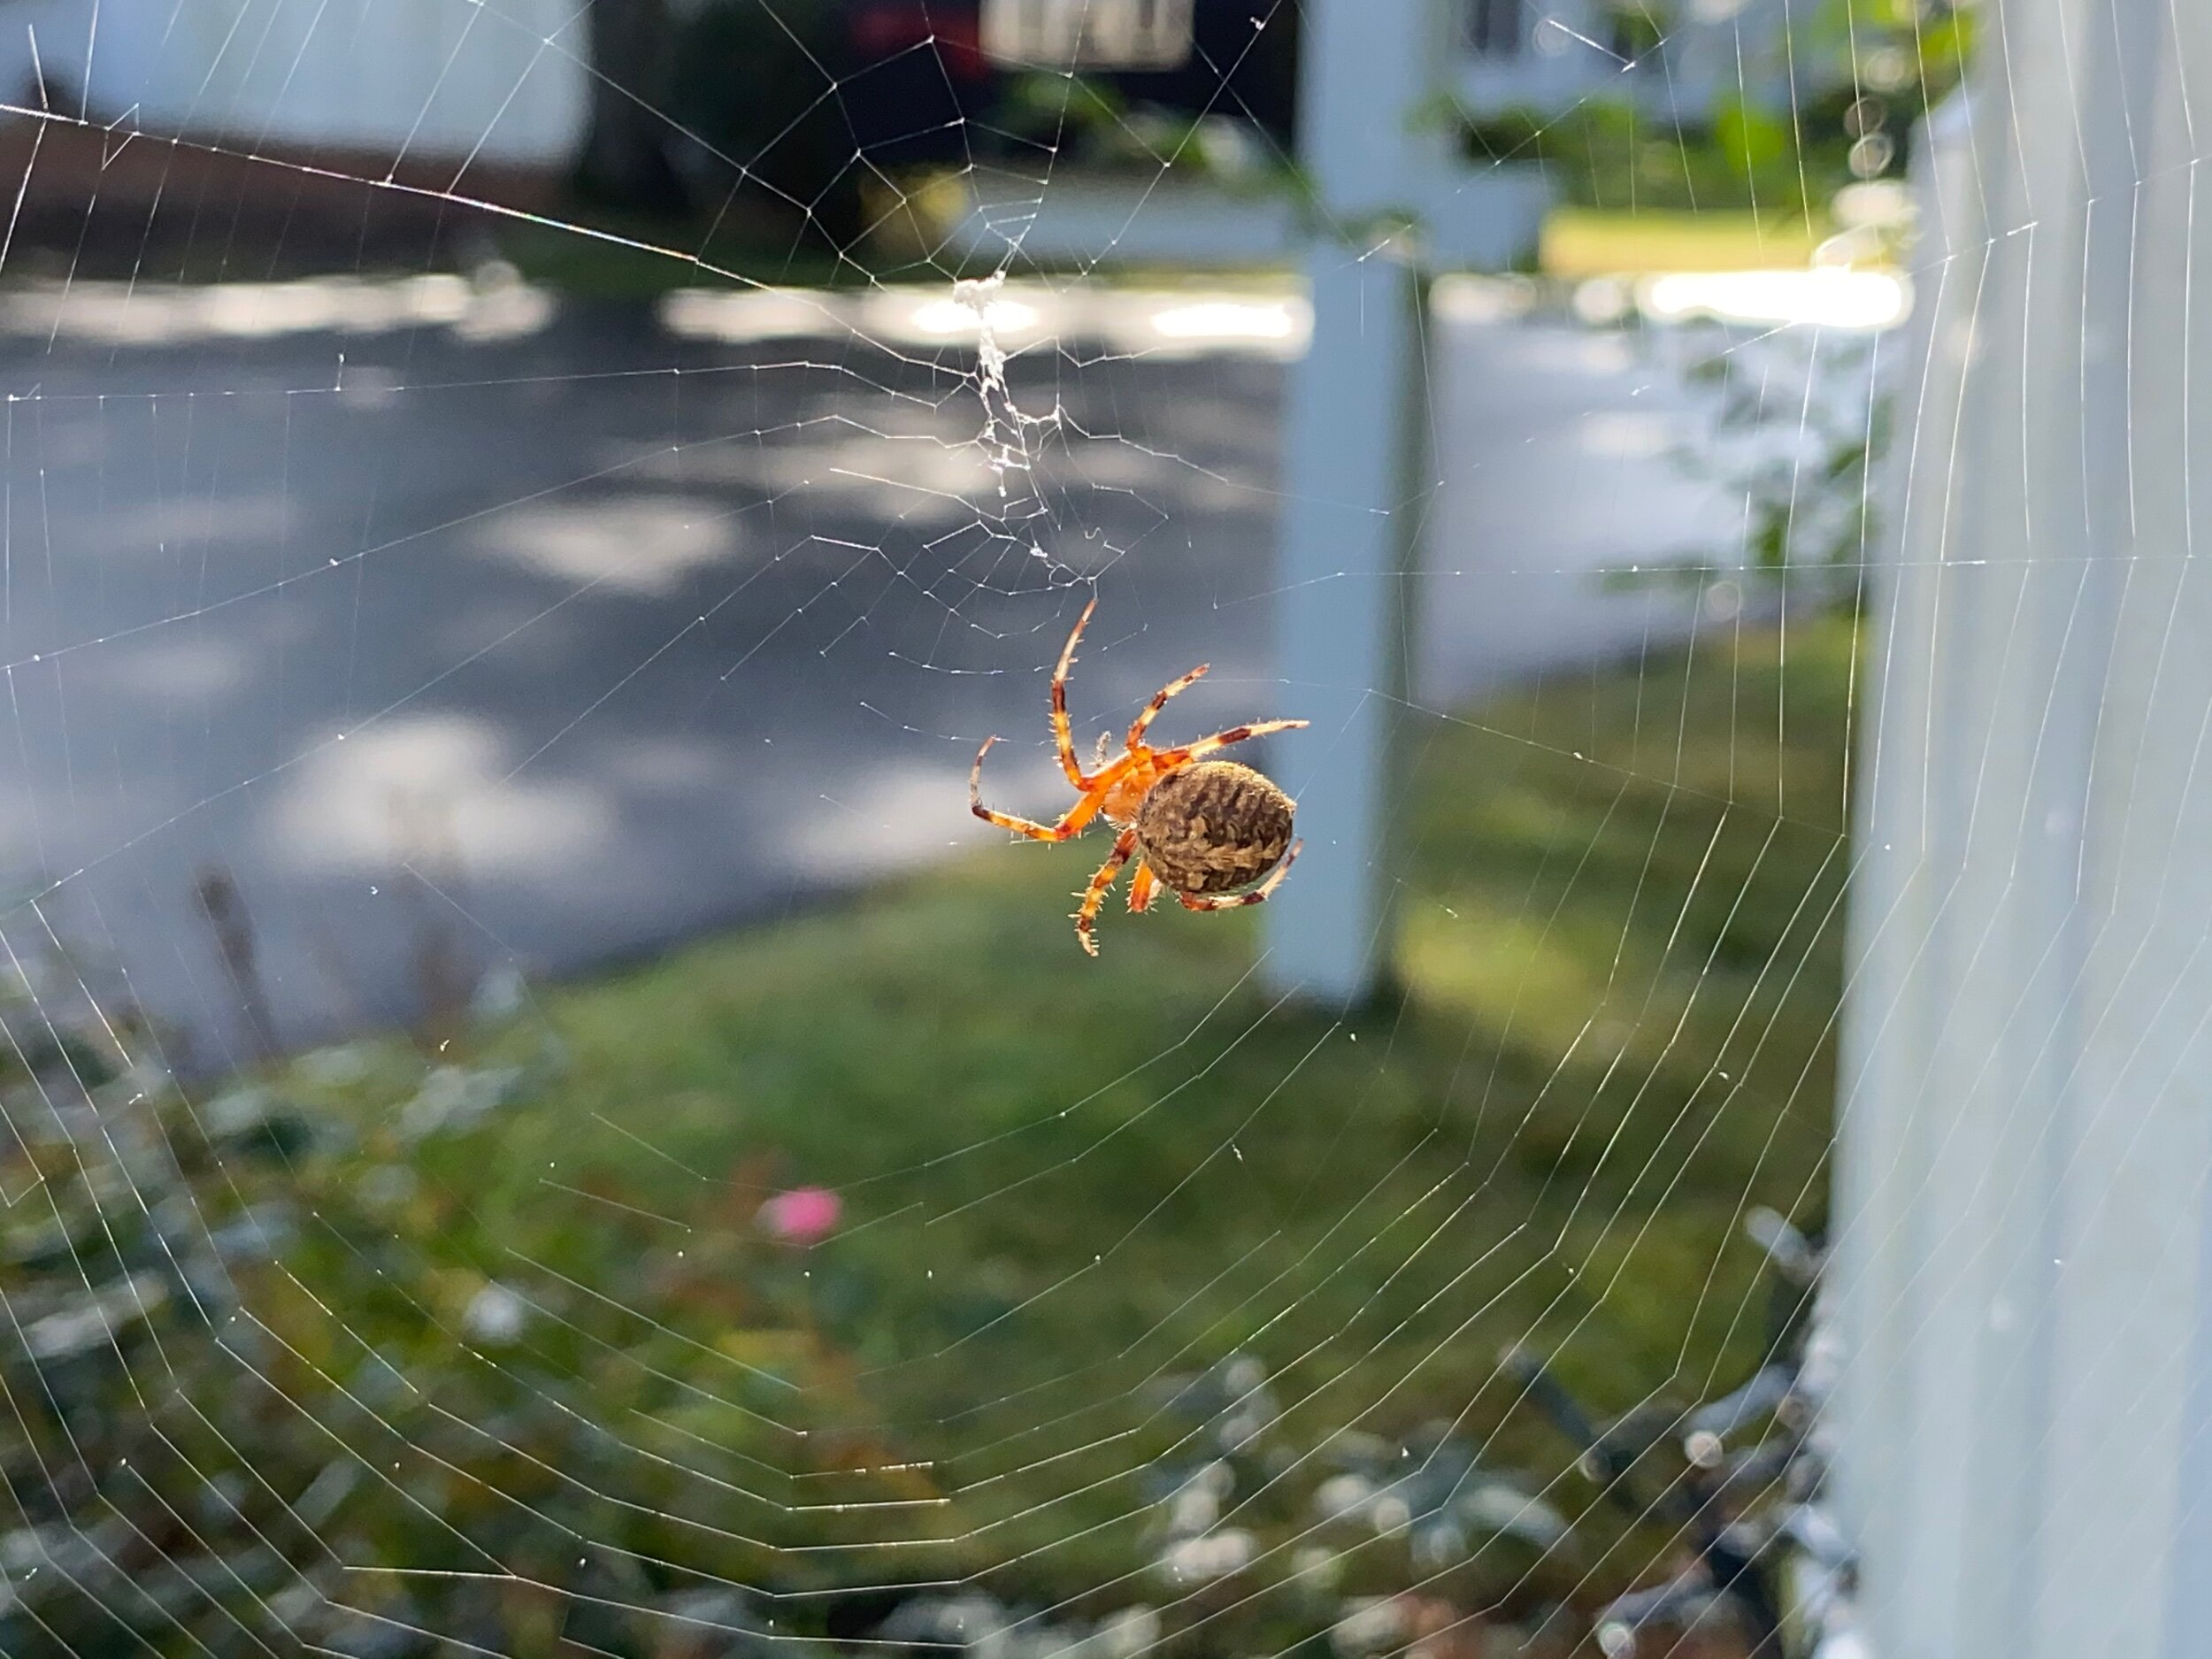 September 26, 2019 - Web repairs after a night of heavy rain (unedited).